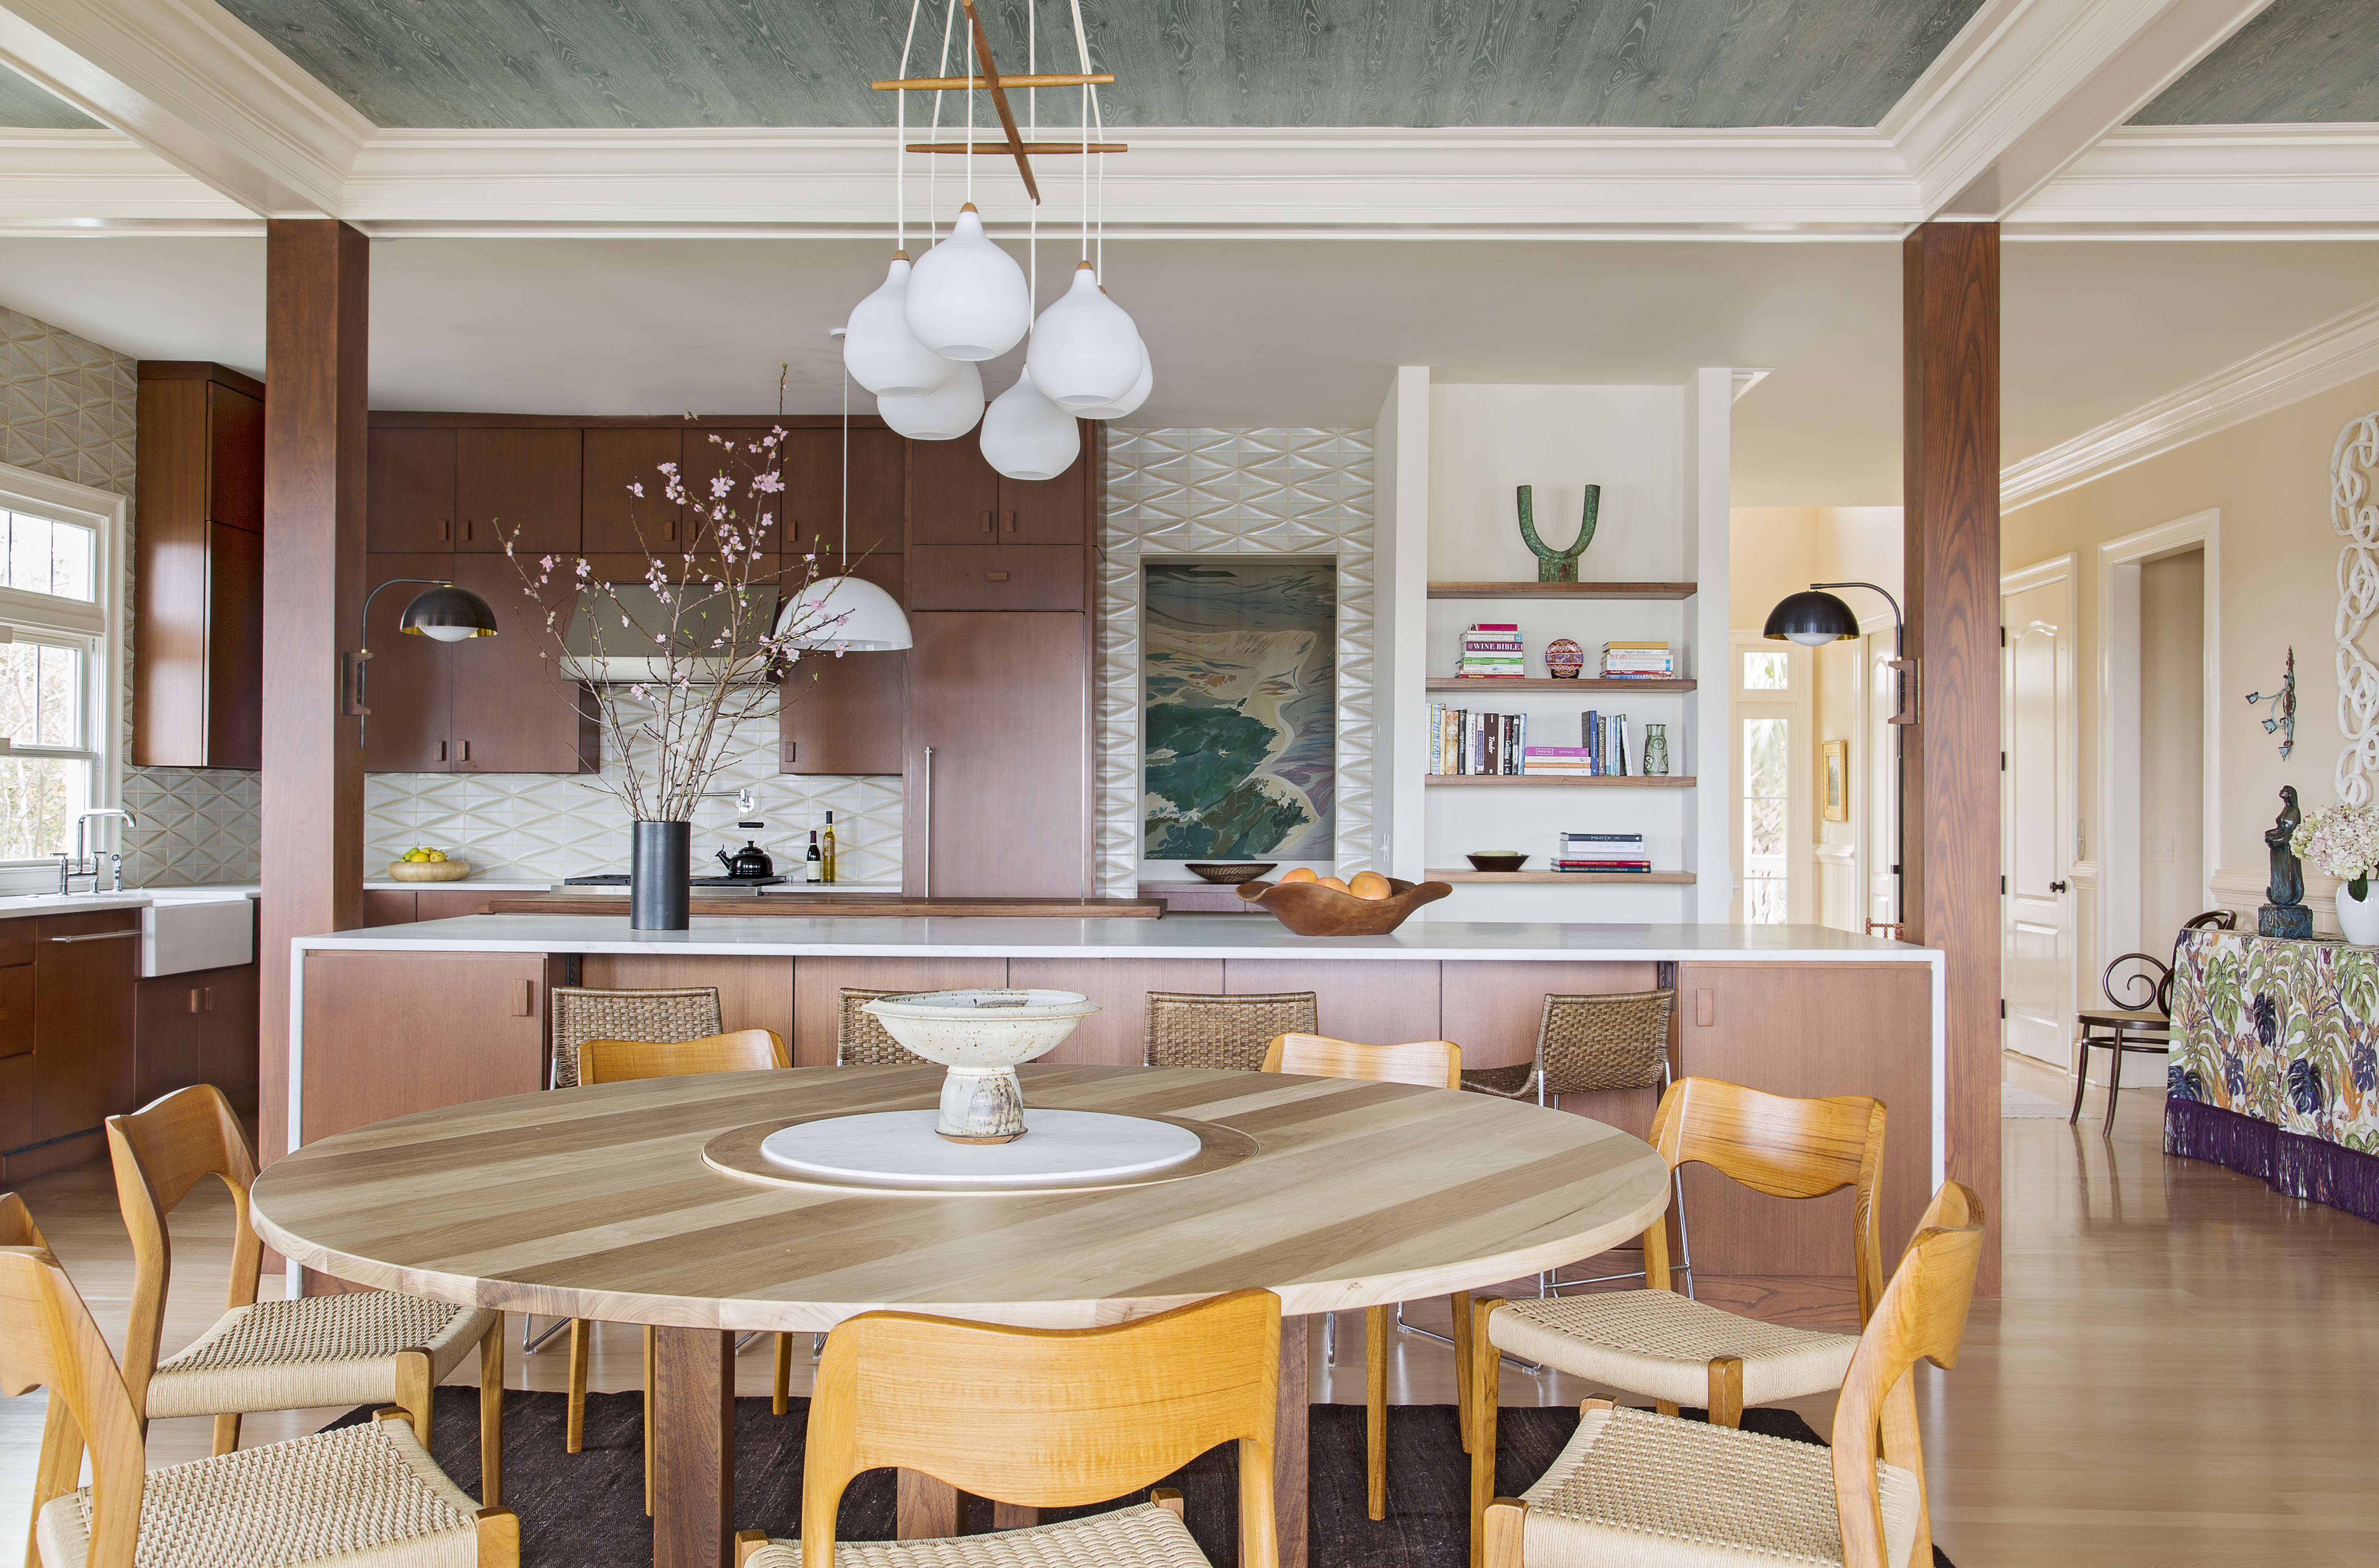 A full kitchen redo was not initially in the cards, but Hranowsky was thrilled when she got the all clear to create a sleeker, more functional space, featuring Ann Sacks glazed geometric tiles and a Mary Edna Fraser batik showcased from the pantry.